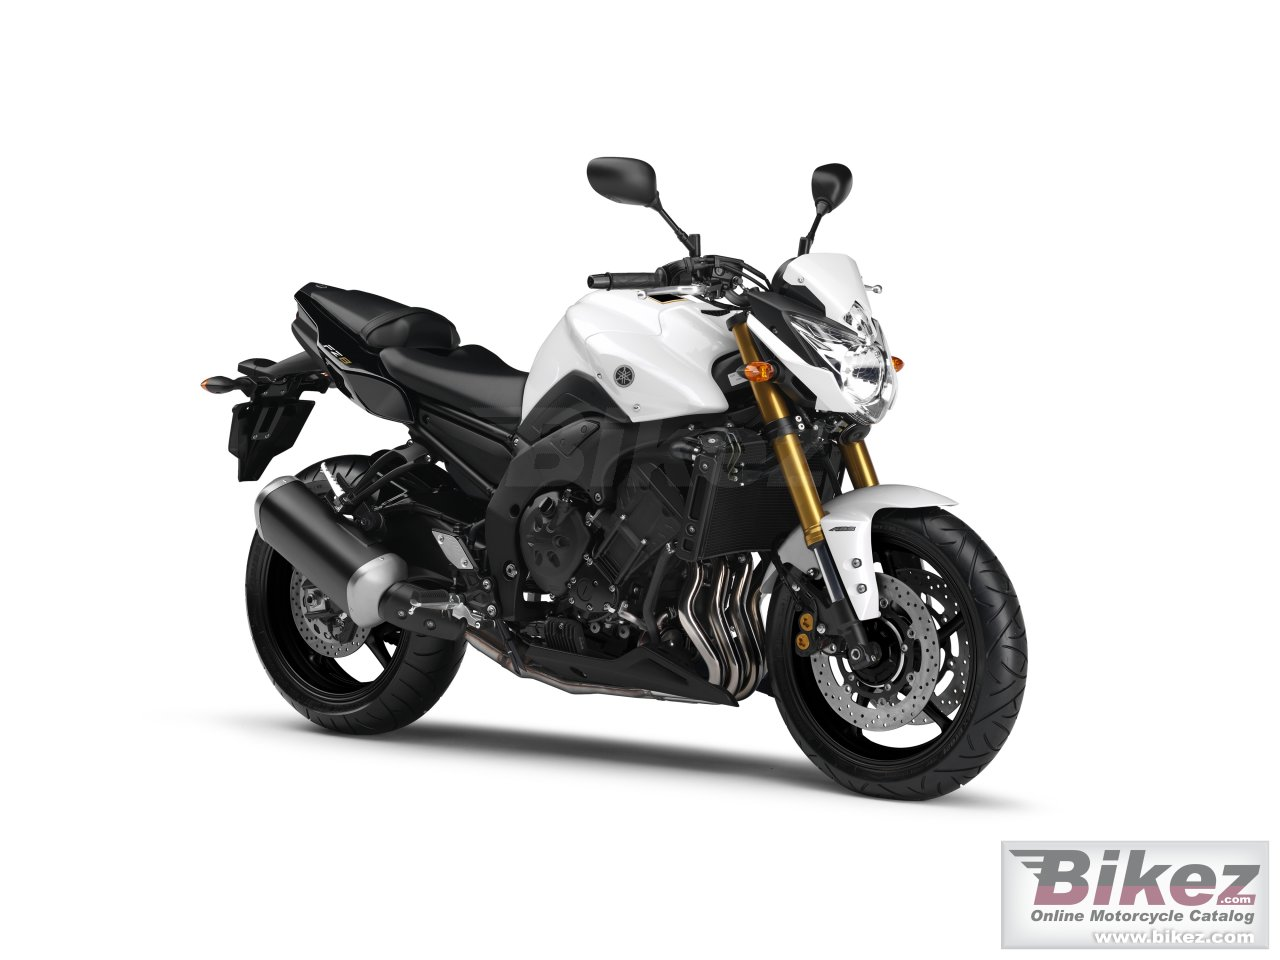 Big Yamaha fz8-n picture and wallpaper from Bikez.com